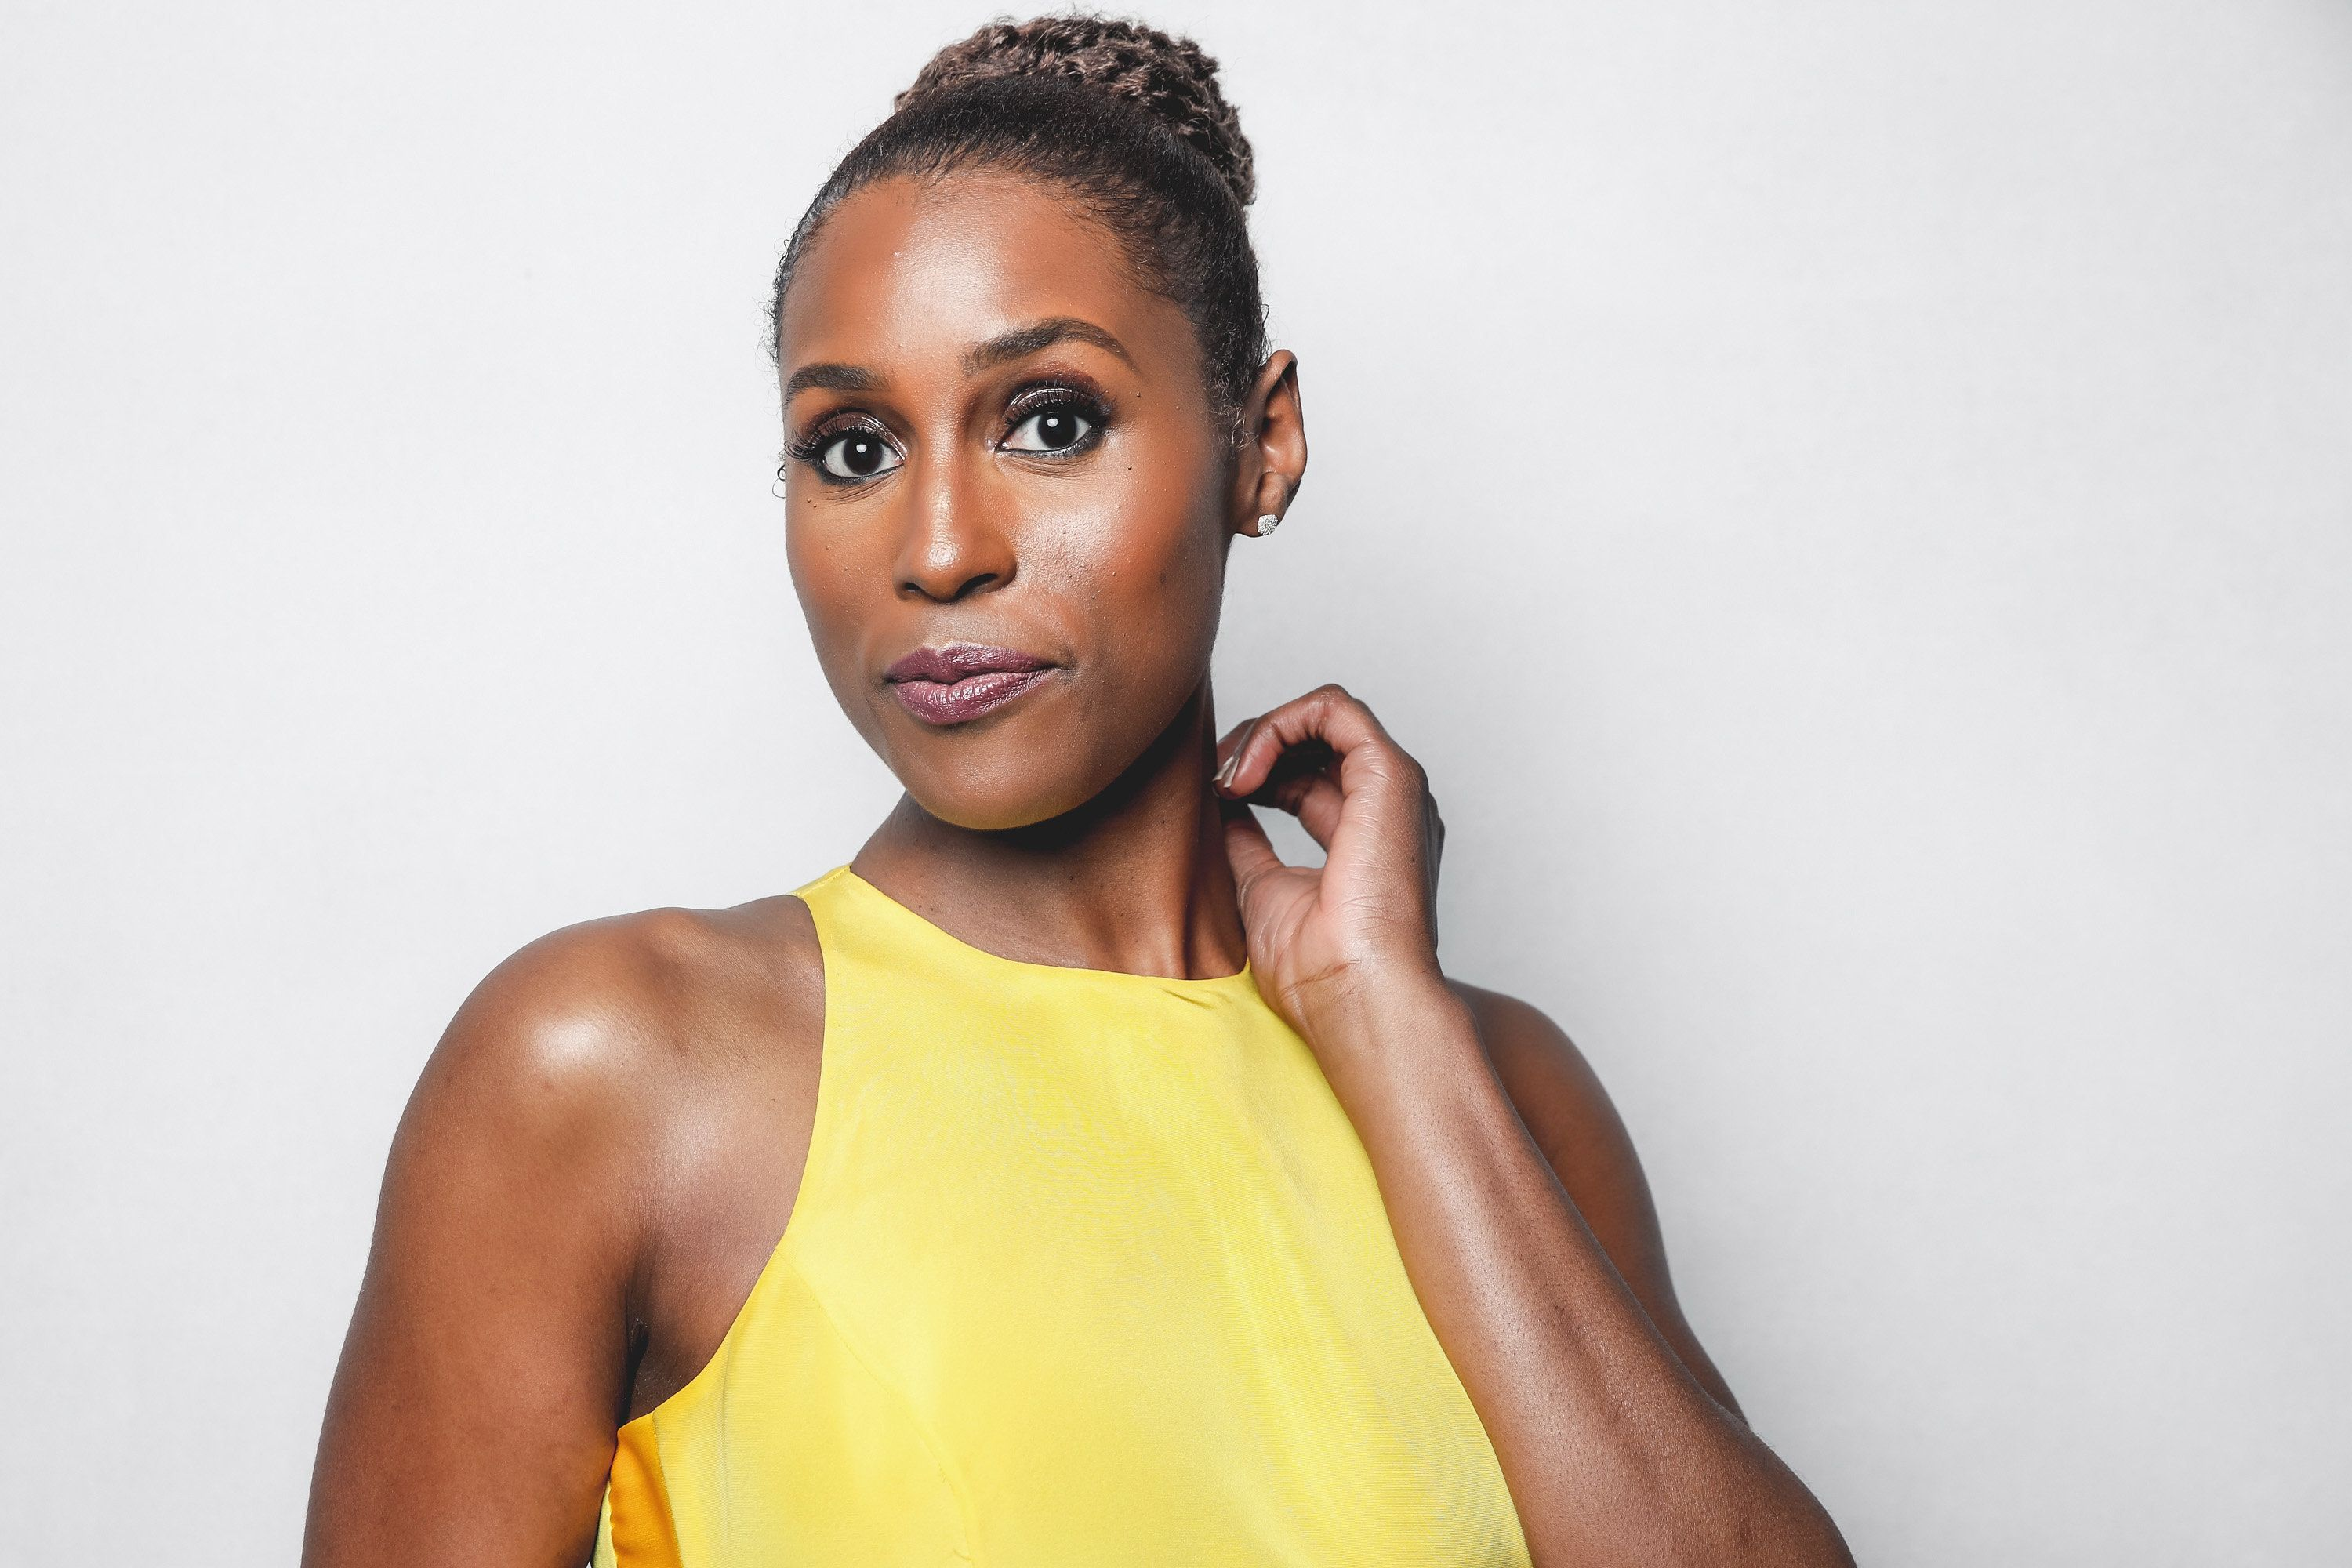 BEVERLY HILLS, CA - JANUARY 06:  Issa Rae poses for a portrait at the BAFTA Los Angeles Tea Party on January 6, 2018 in Beverly Hills, California.  (Photo by Rich Fury/Getty Images)